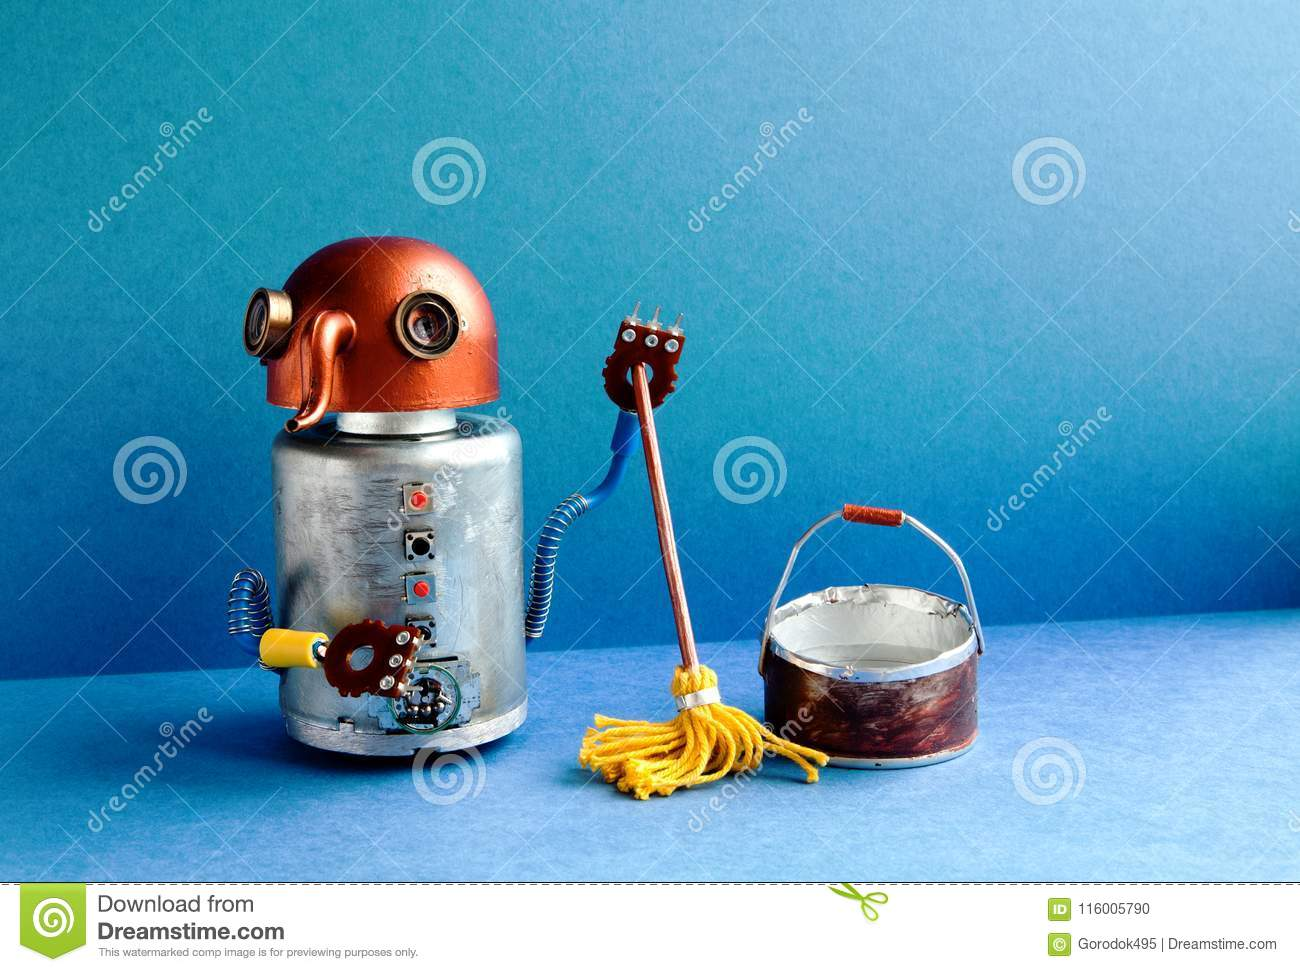 Cleaning Washing Room Service Concept  Funny Robot Janitor